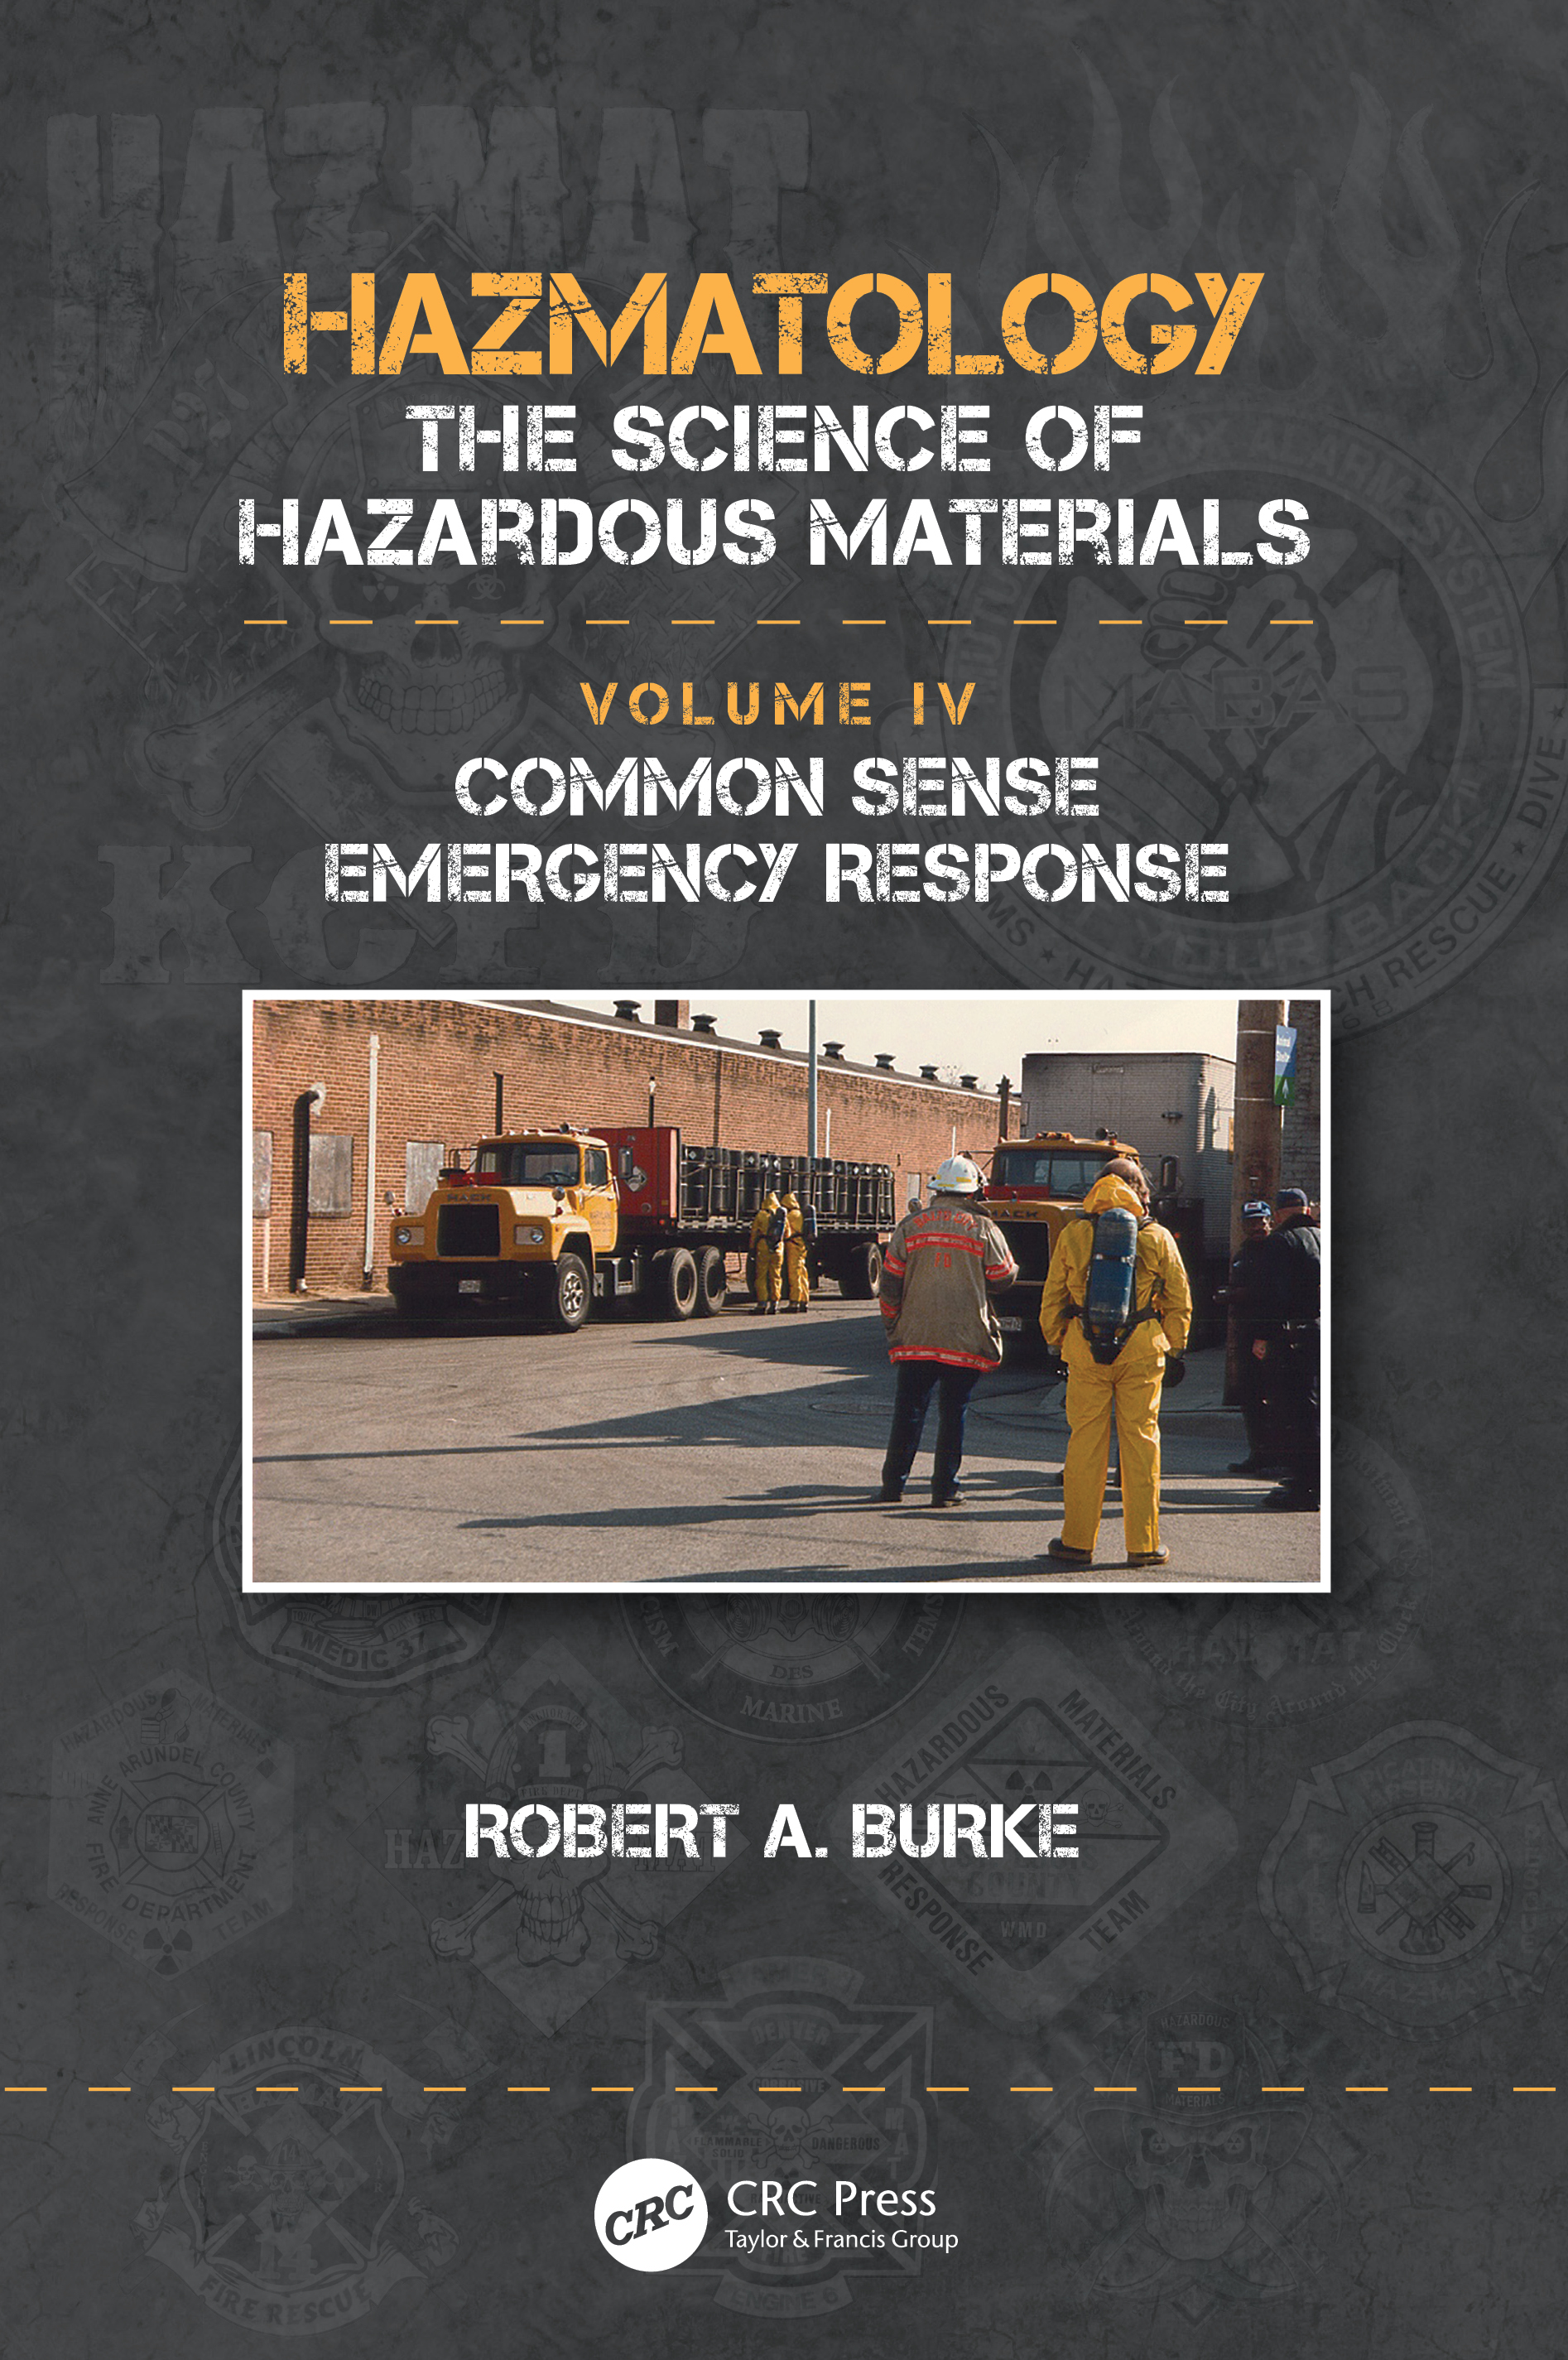 Common Sense Emergency Response book cover